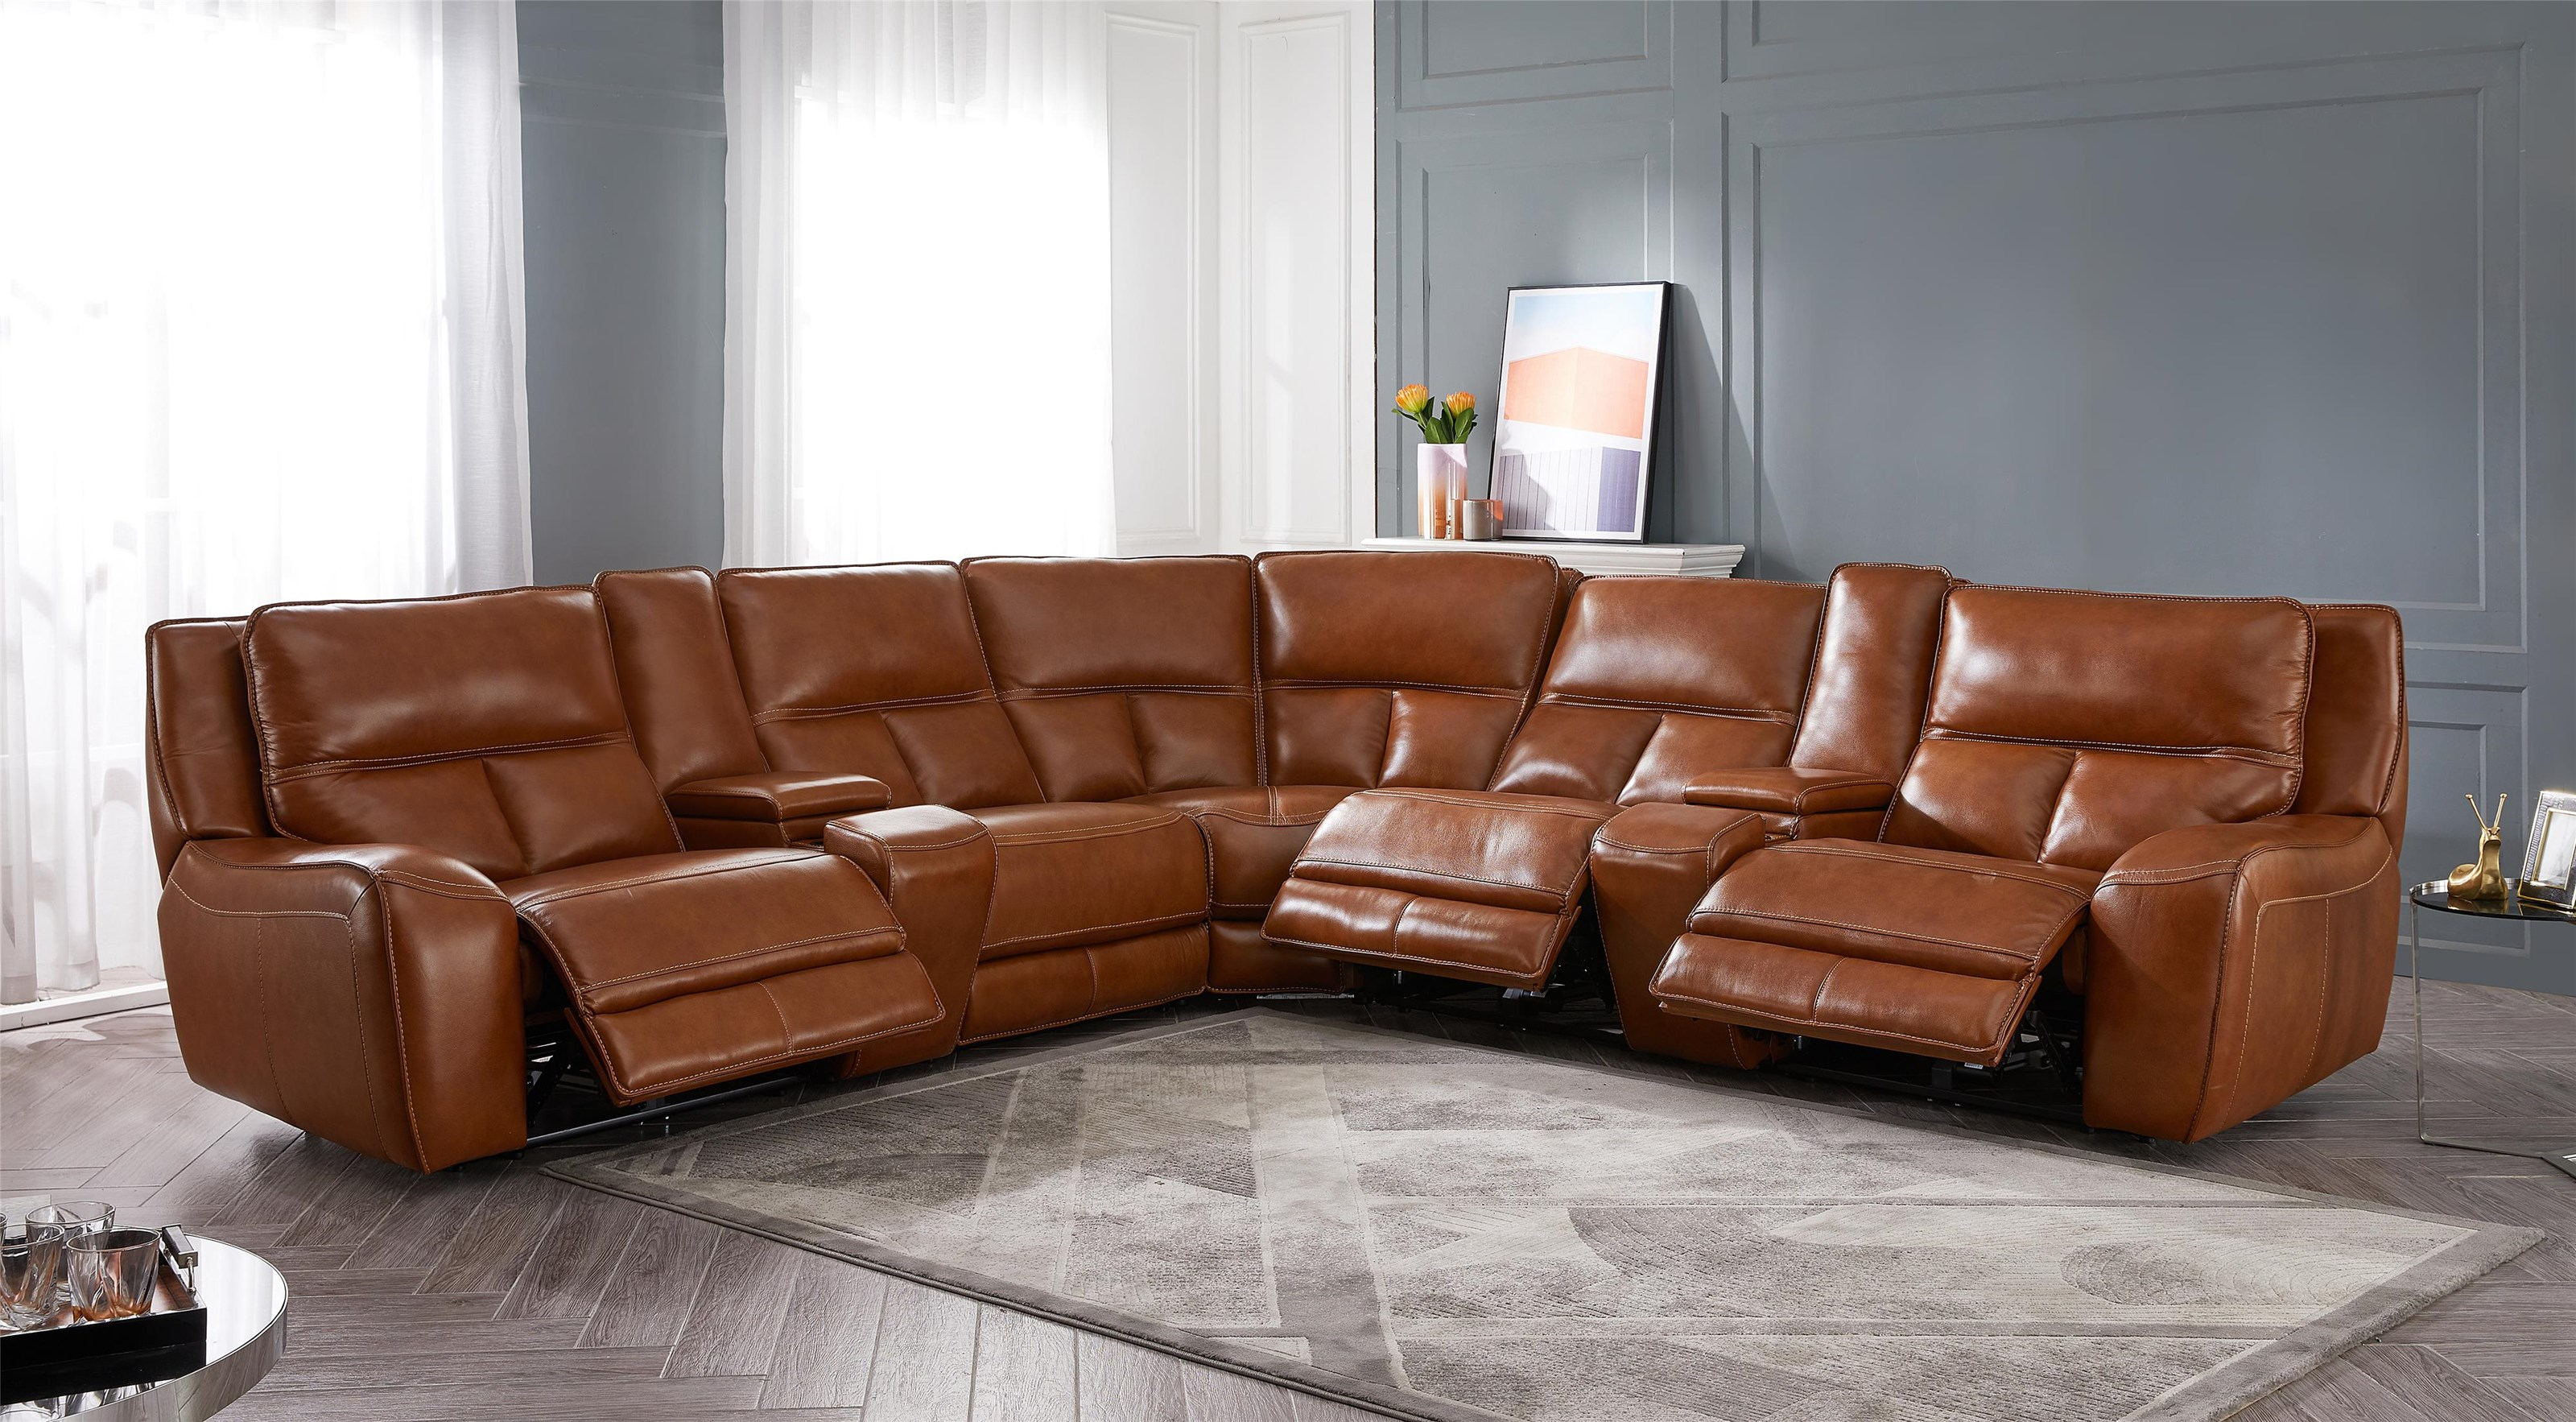 ManWah 7 Piece Reclining Sectional by Alex Express at Northeast Factory Direct